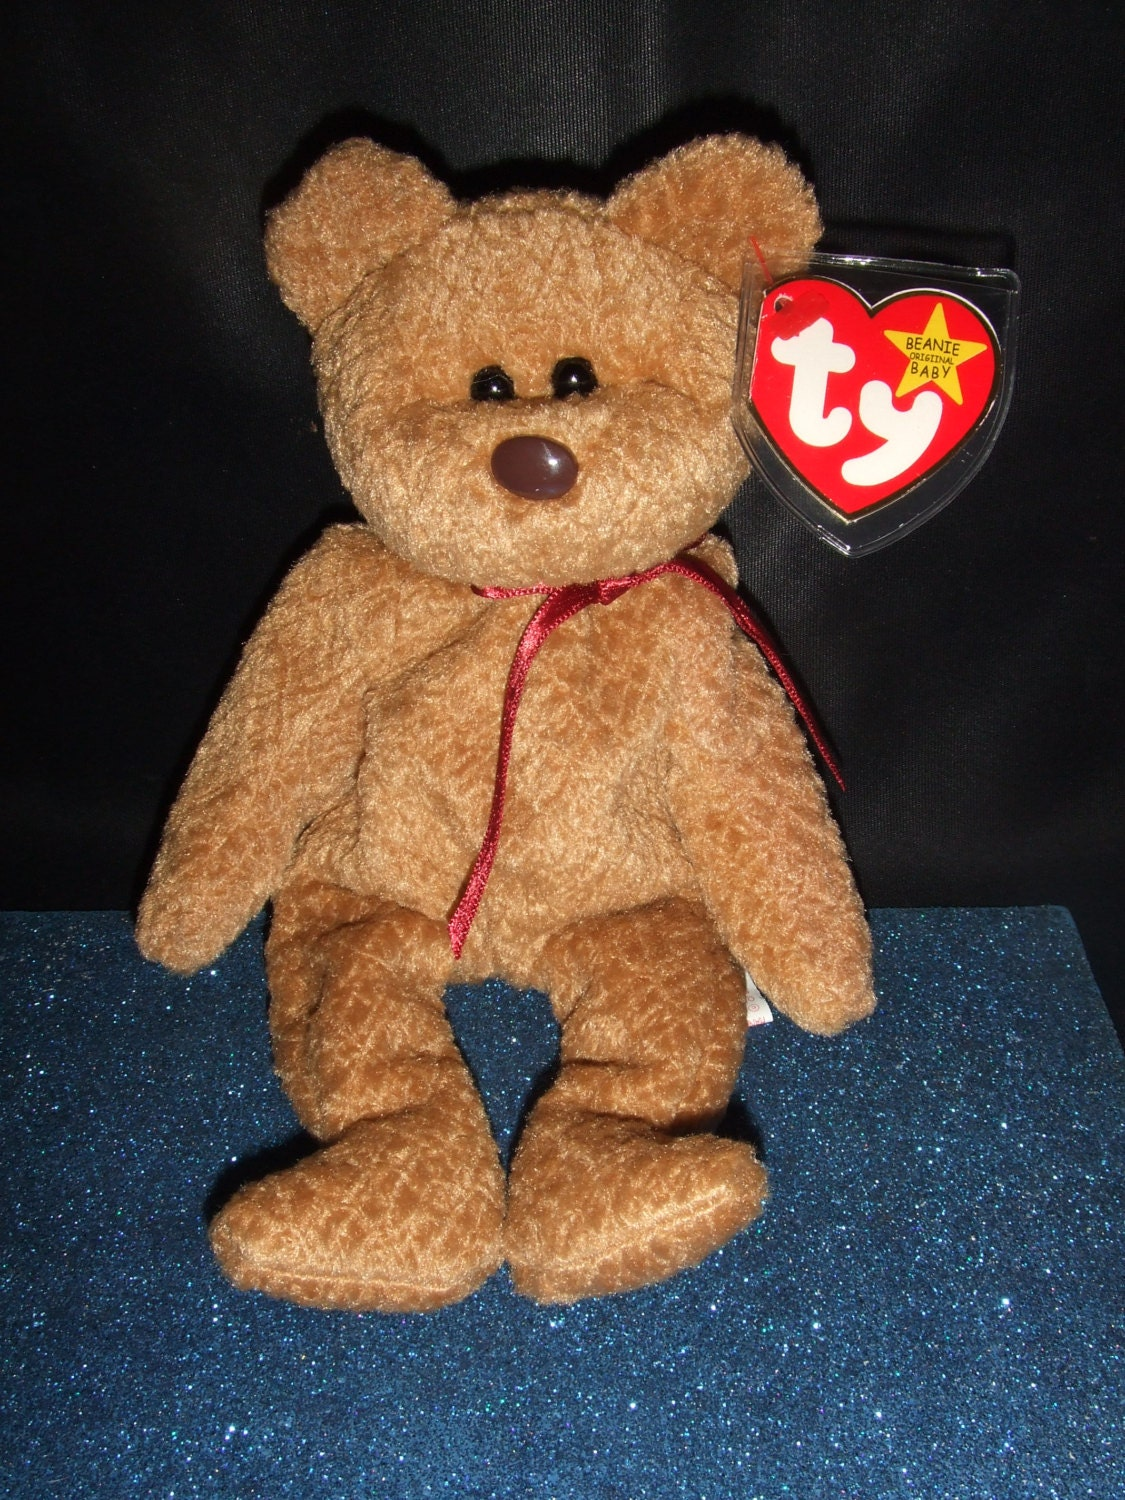 curly the bear beanie babies collection original with errors. Black Bedroom Furniture Sets. Home Design Ideas